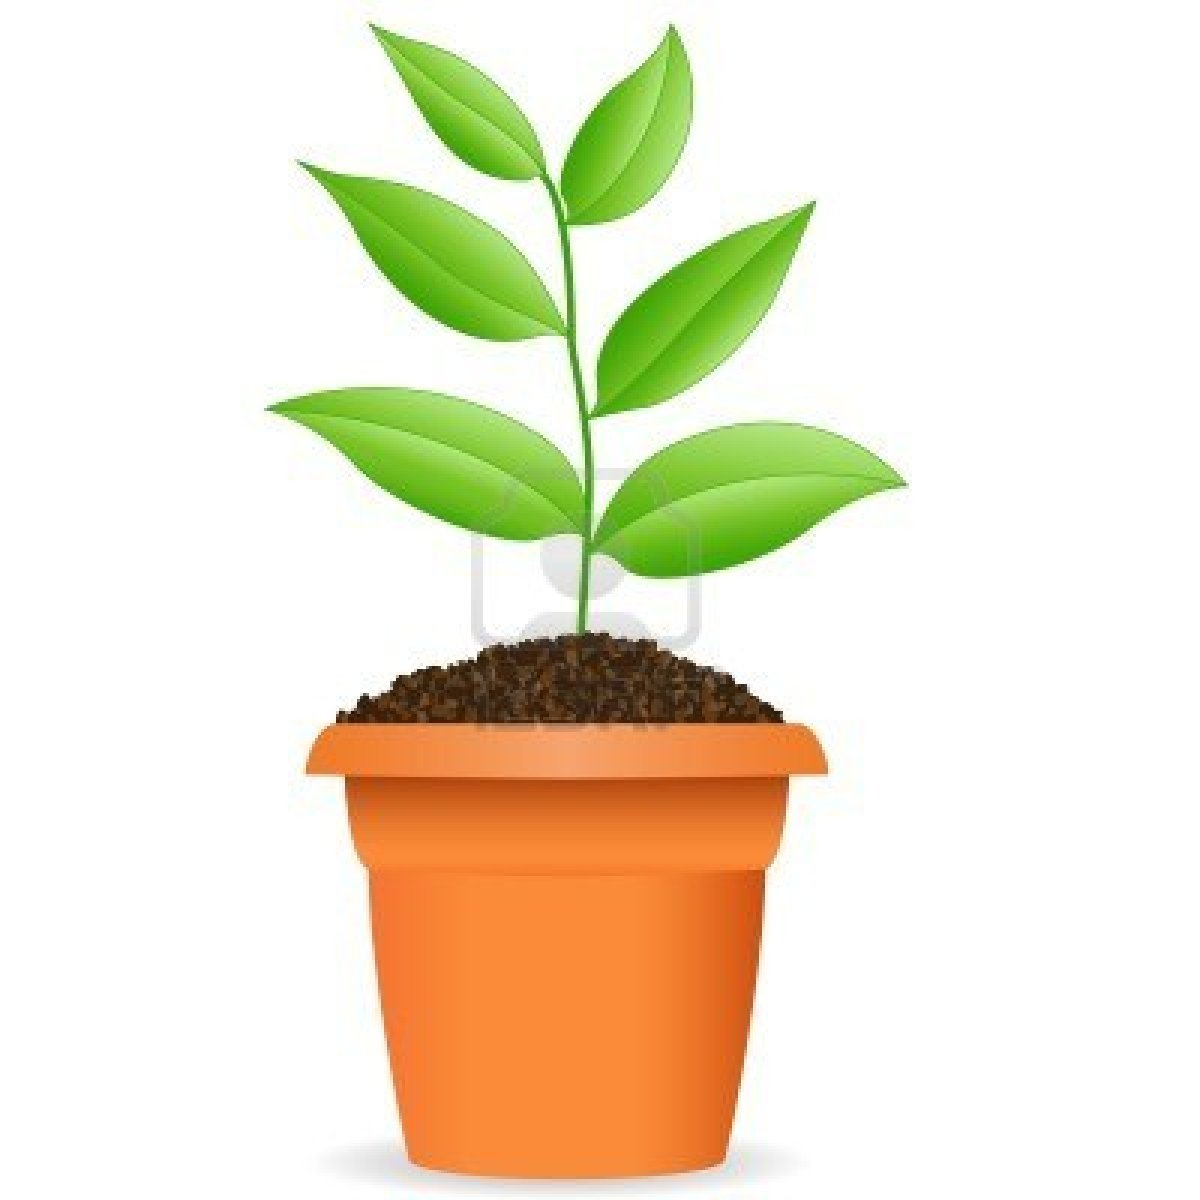 clipart flower in pot - photo #29